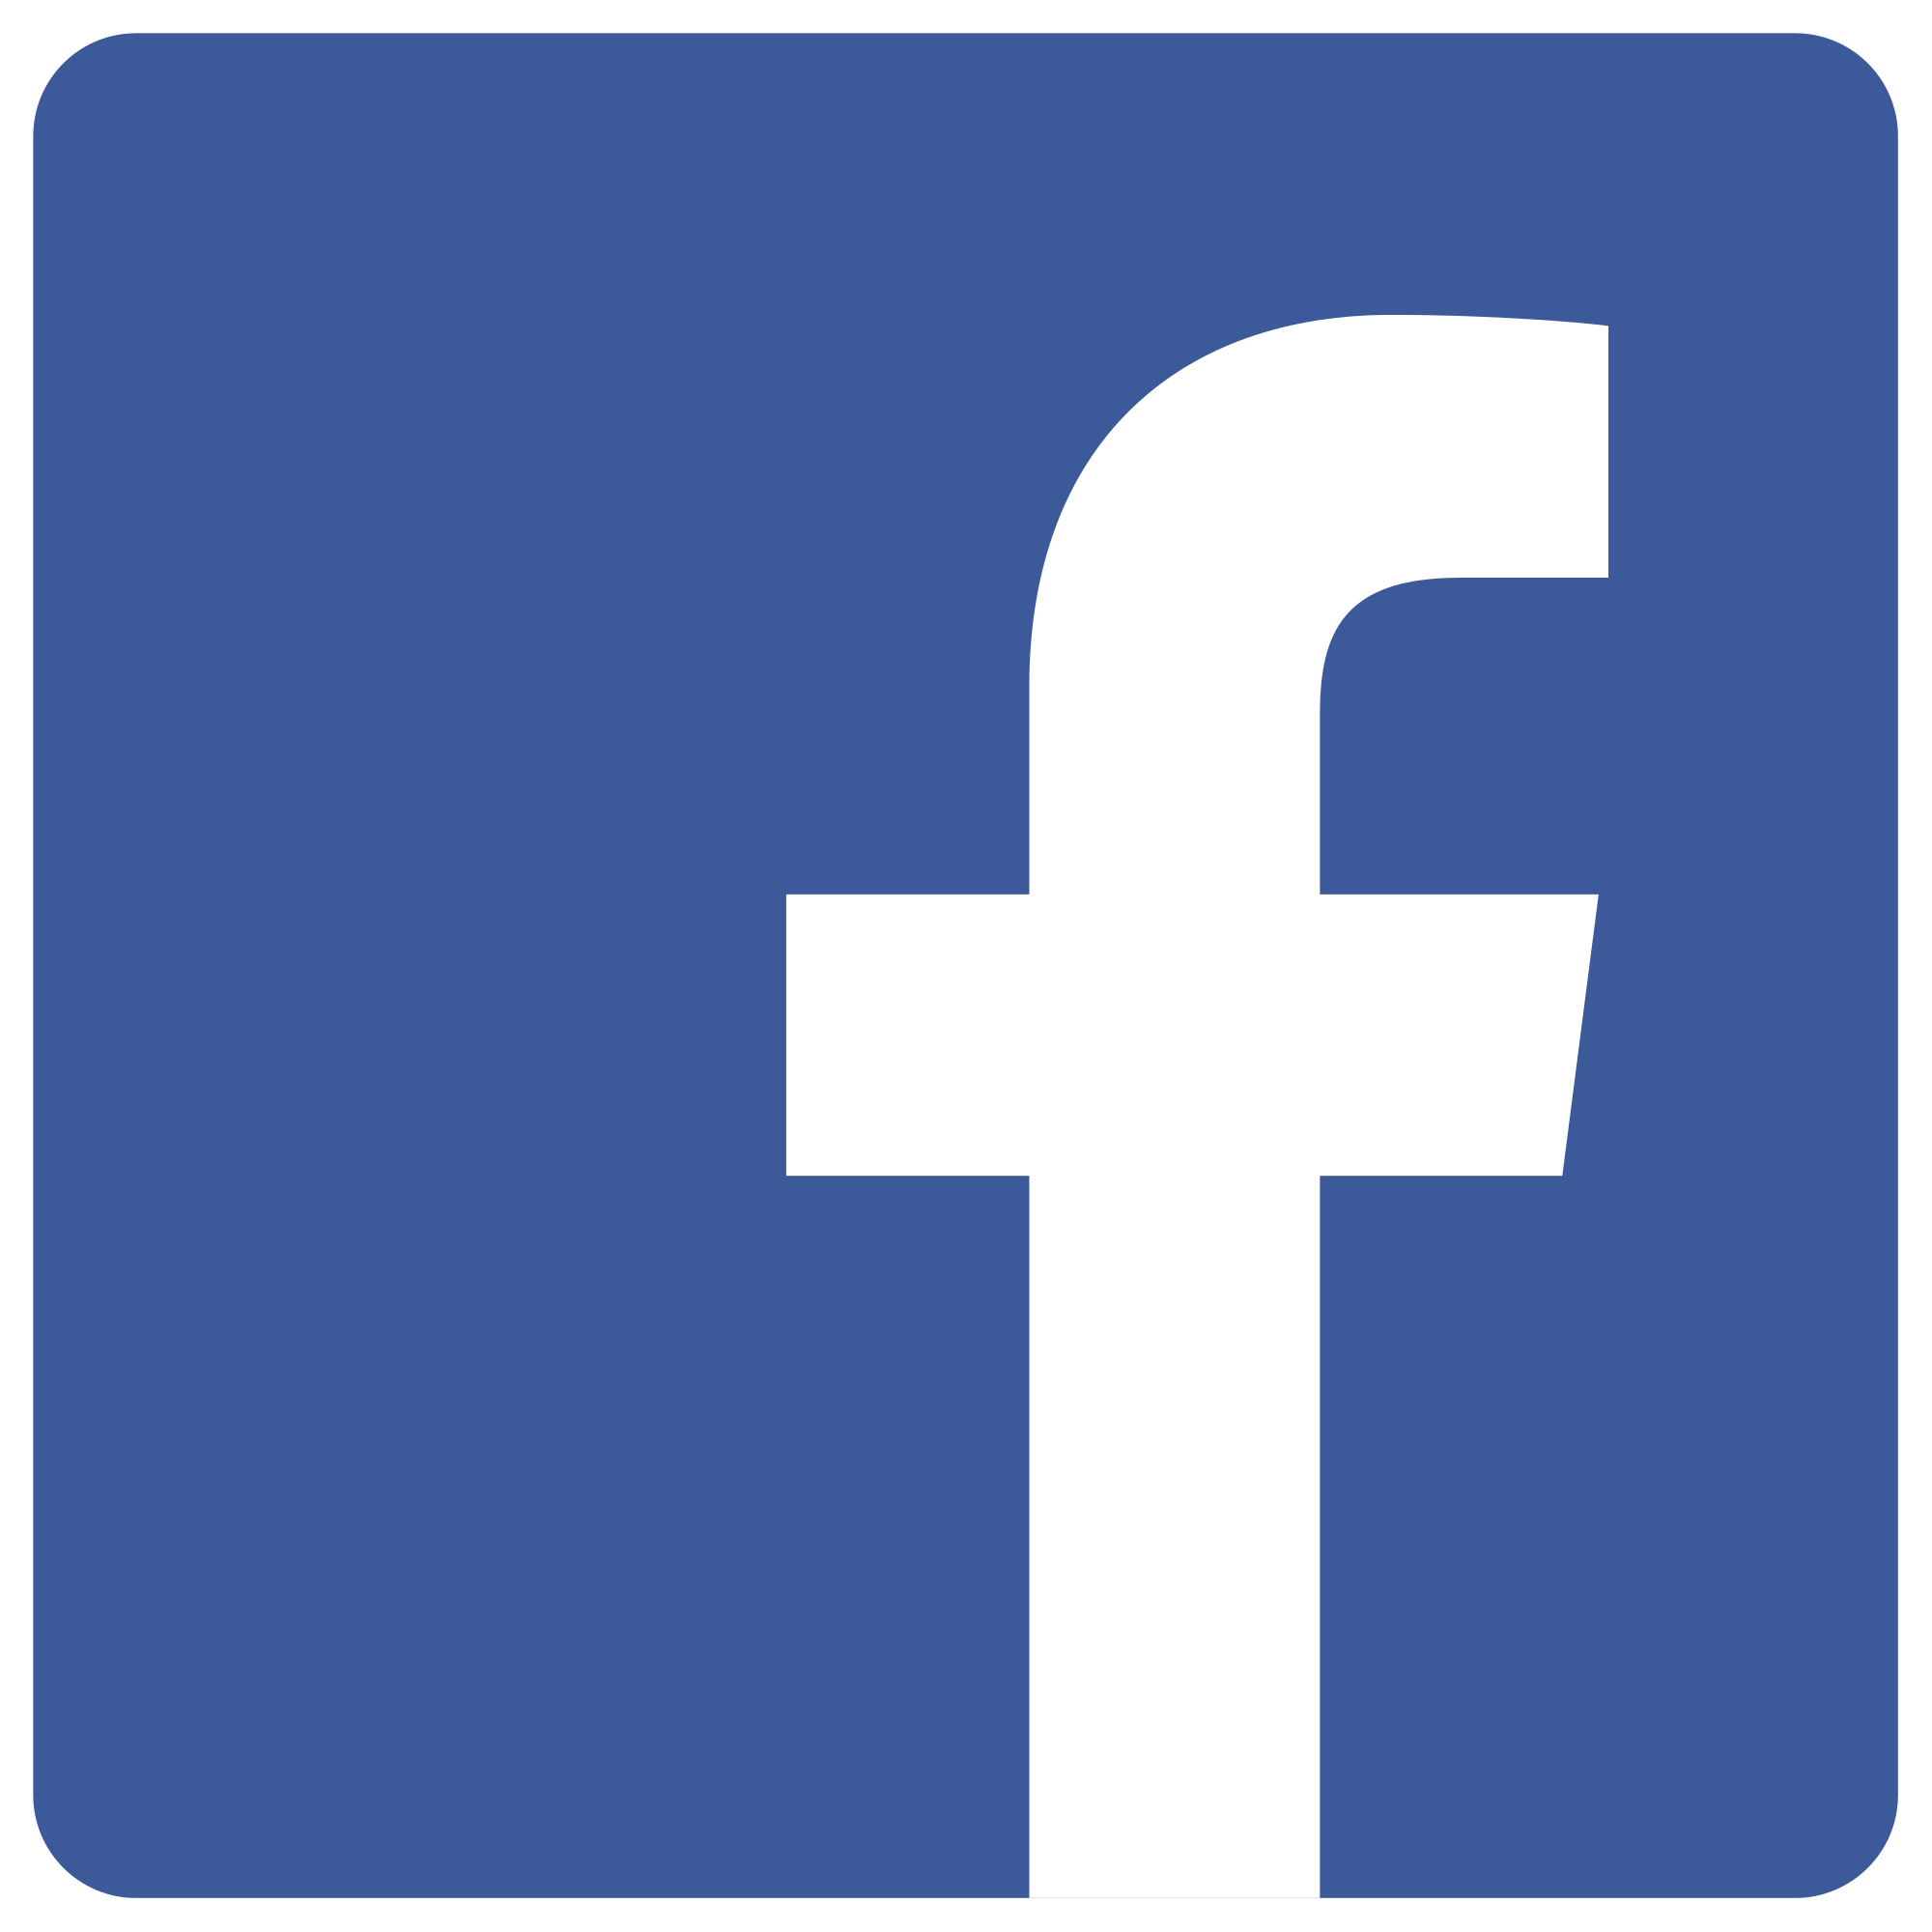 facebook blue logo in transparent background